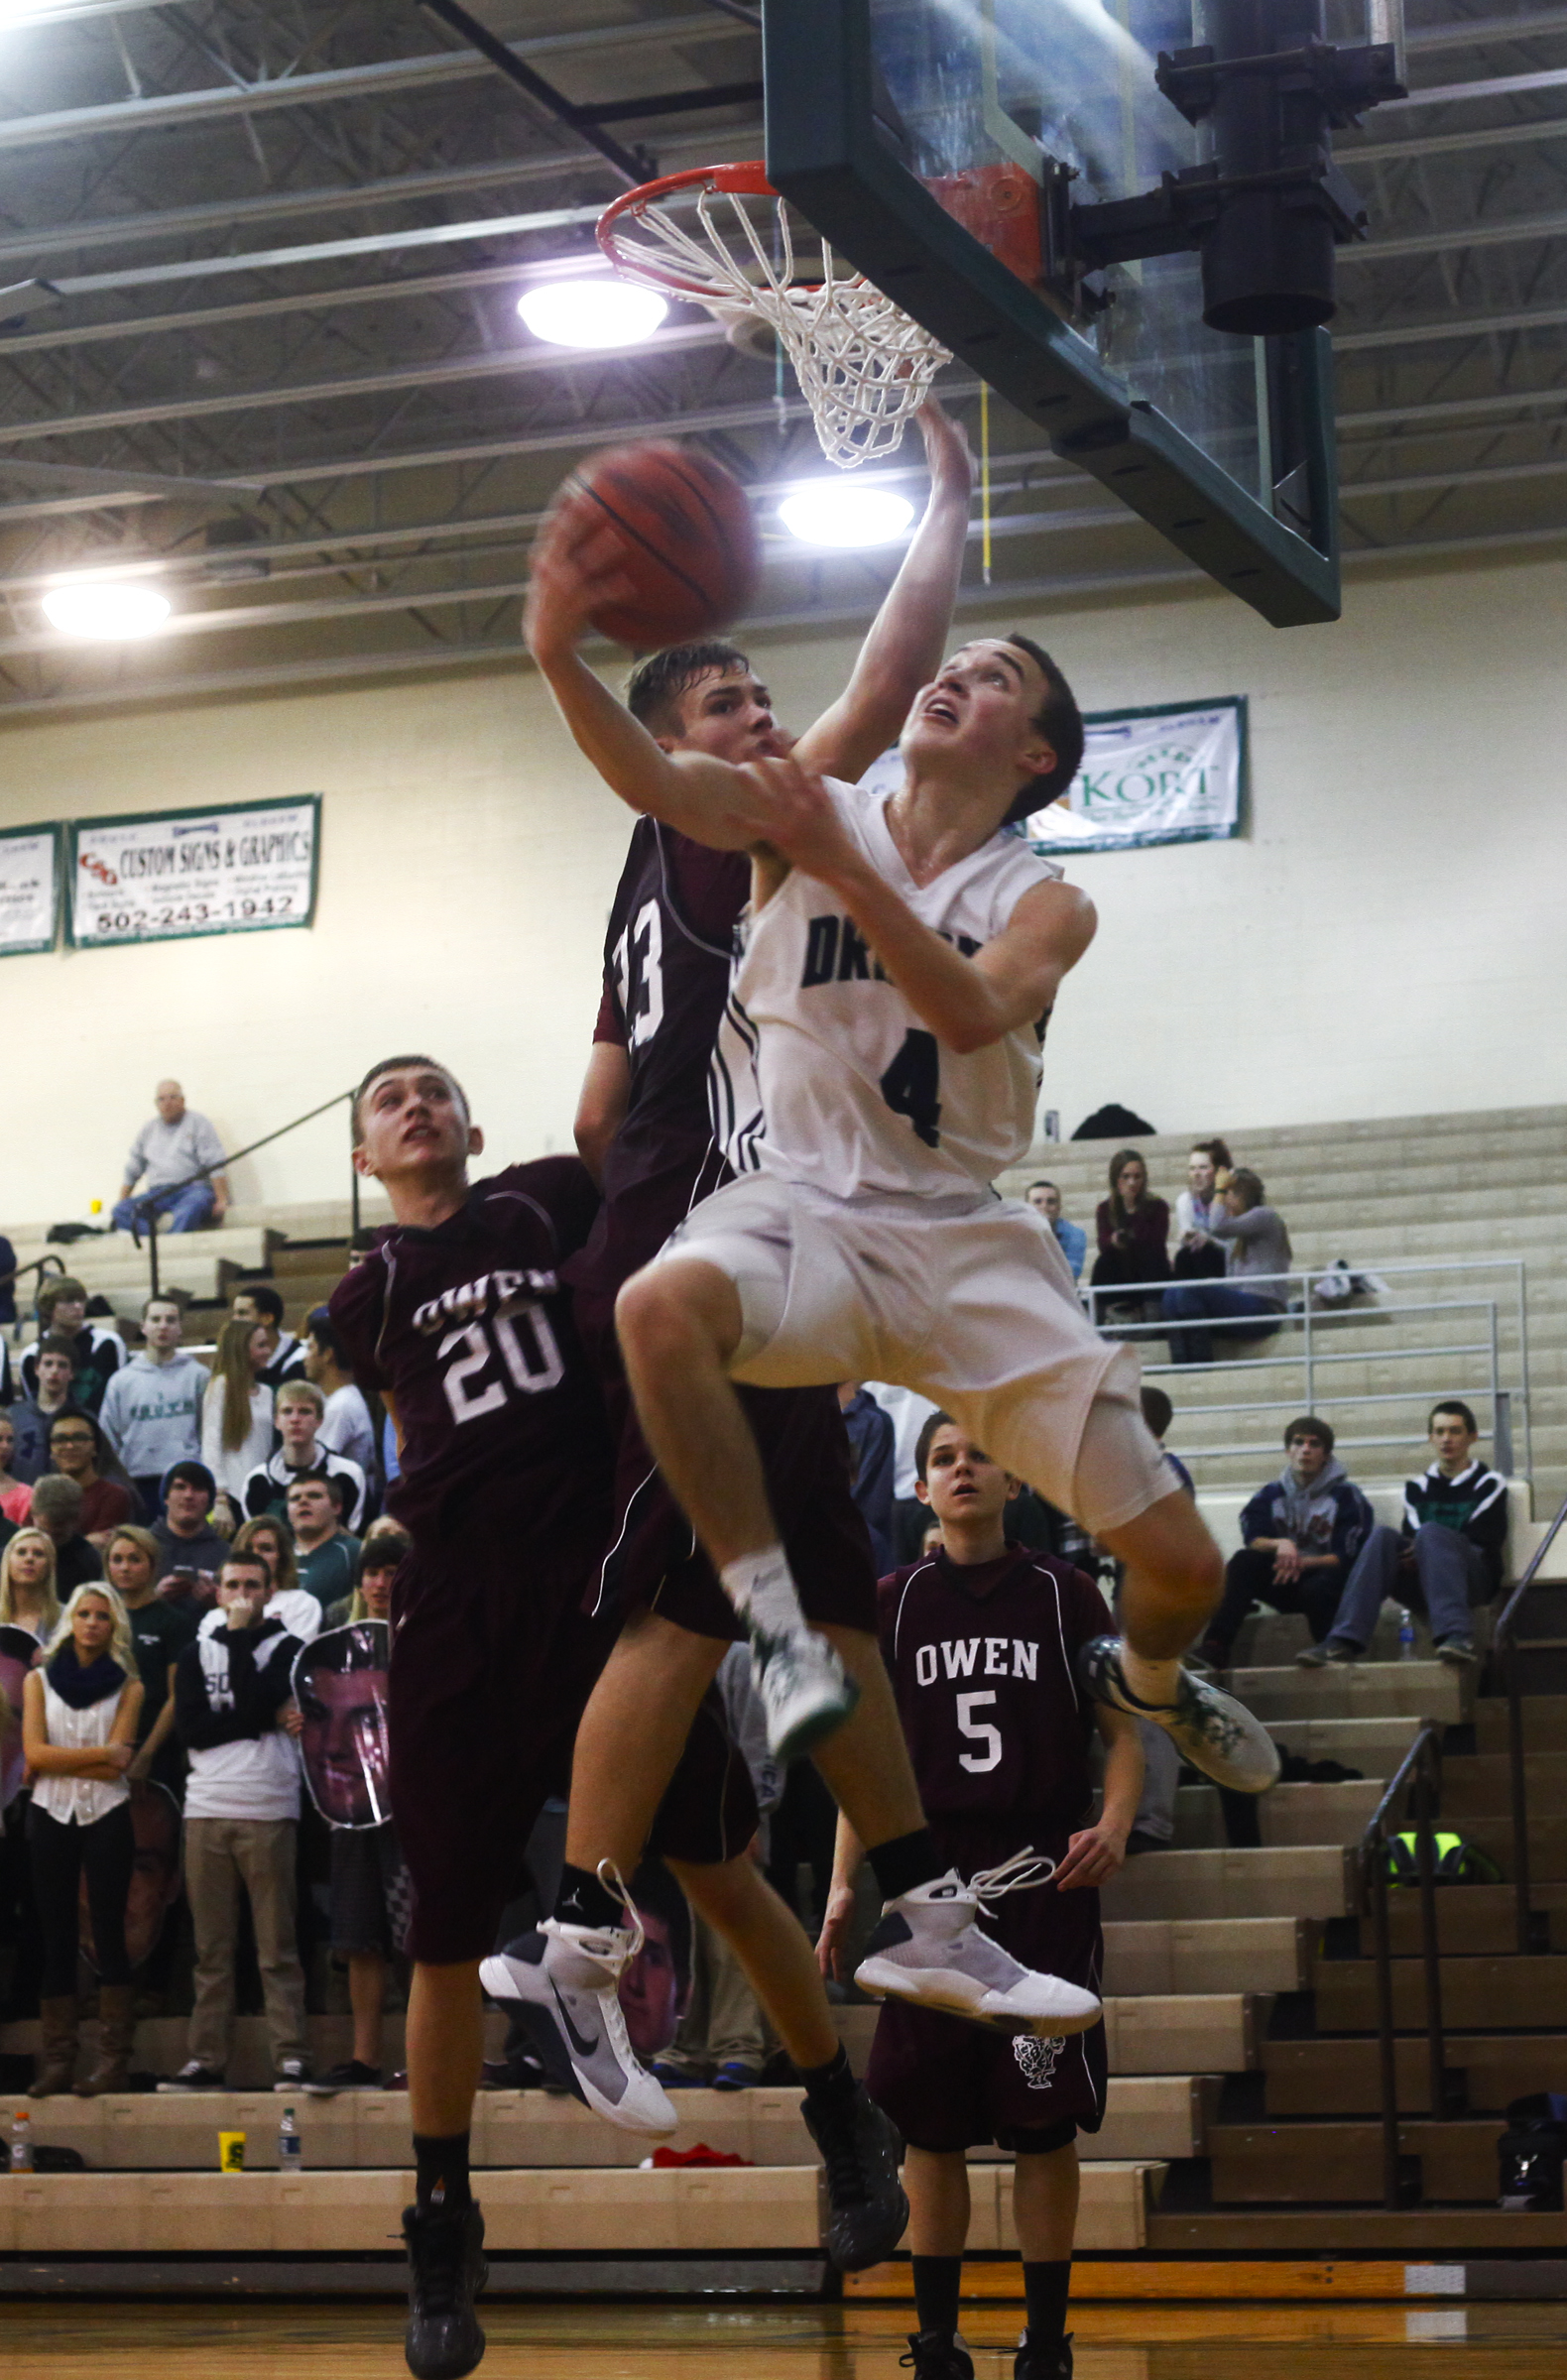 South Oldham guard Michael Griffin makes a reverse layup against Owen County sophomore guard Carson Williams during their 82 - 70 win against Owen on February 15 in Crestwood.